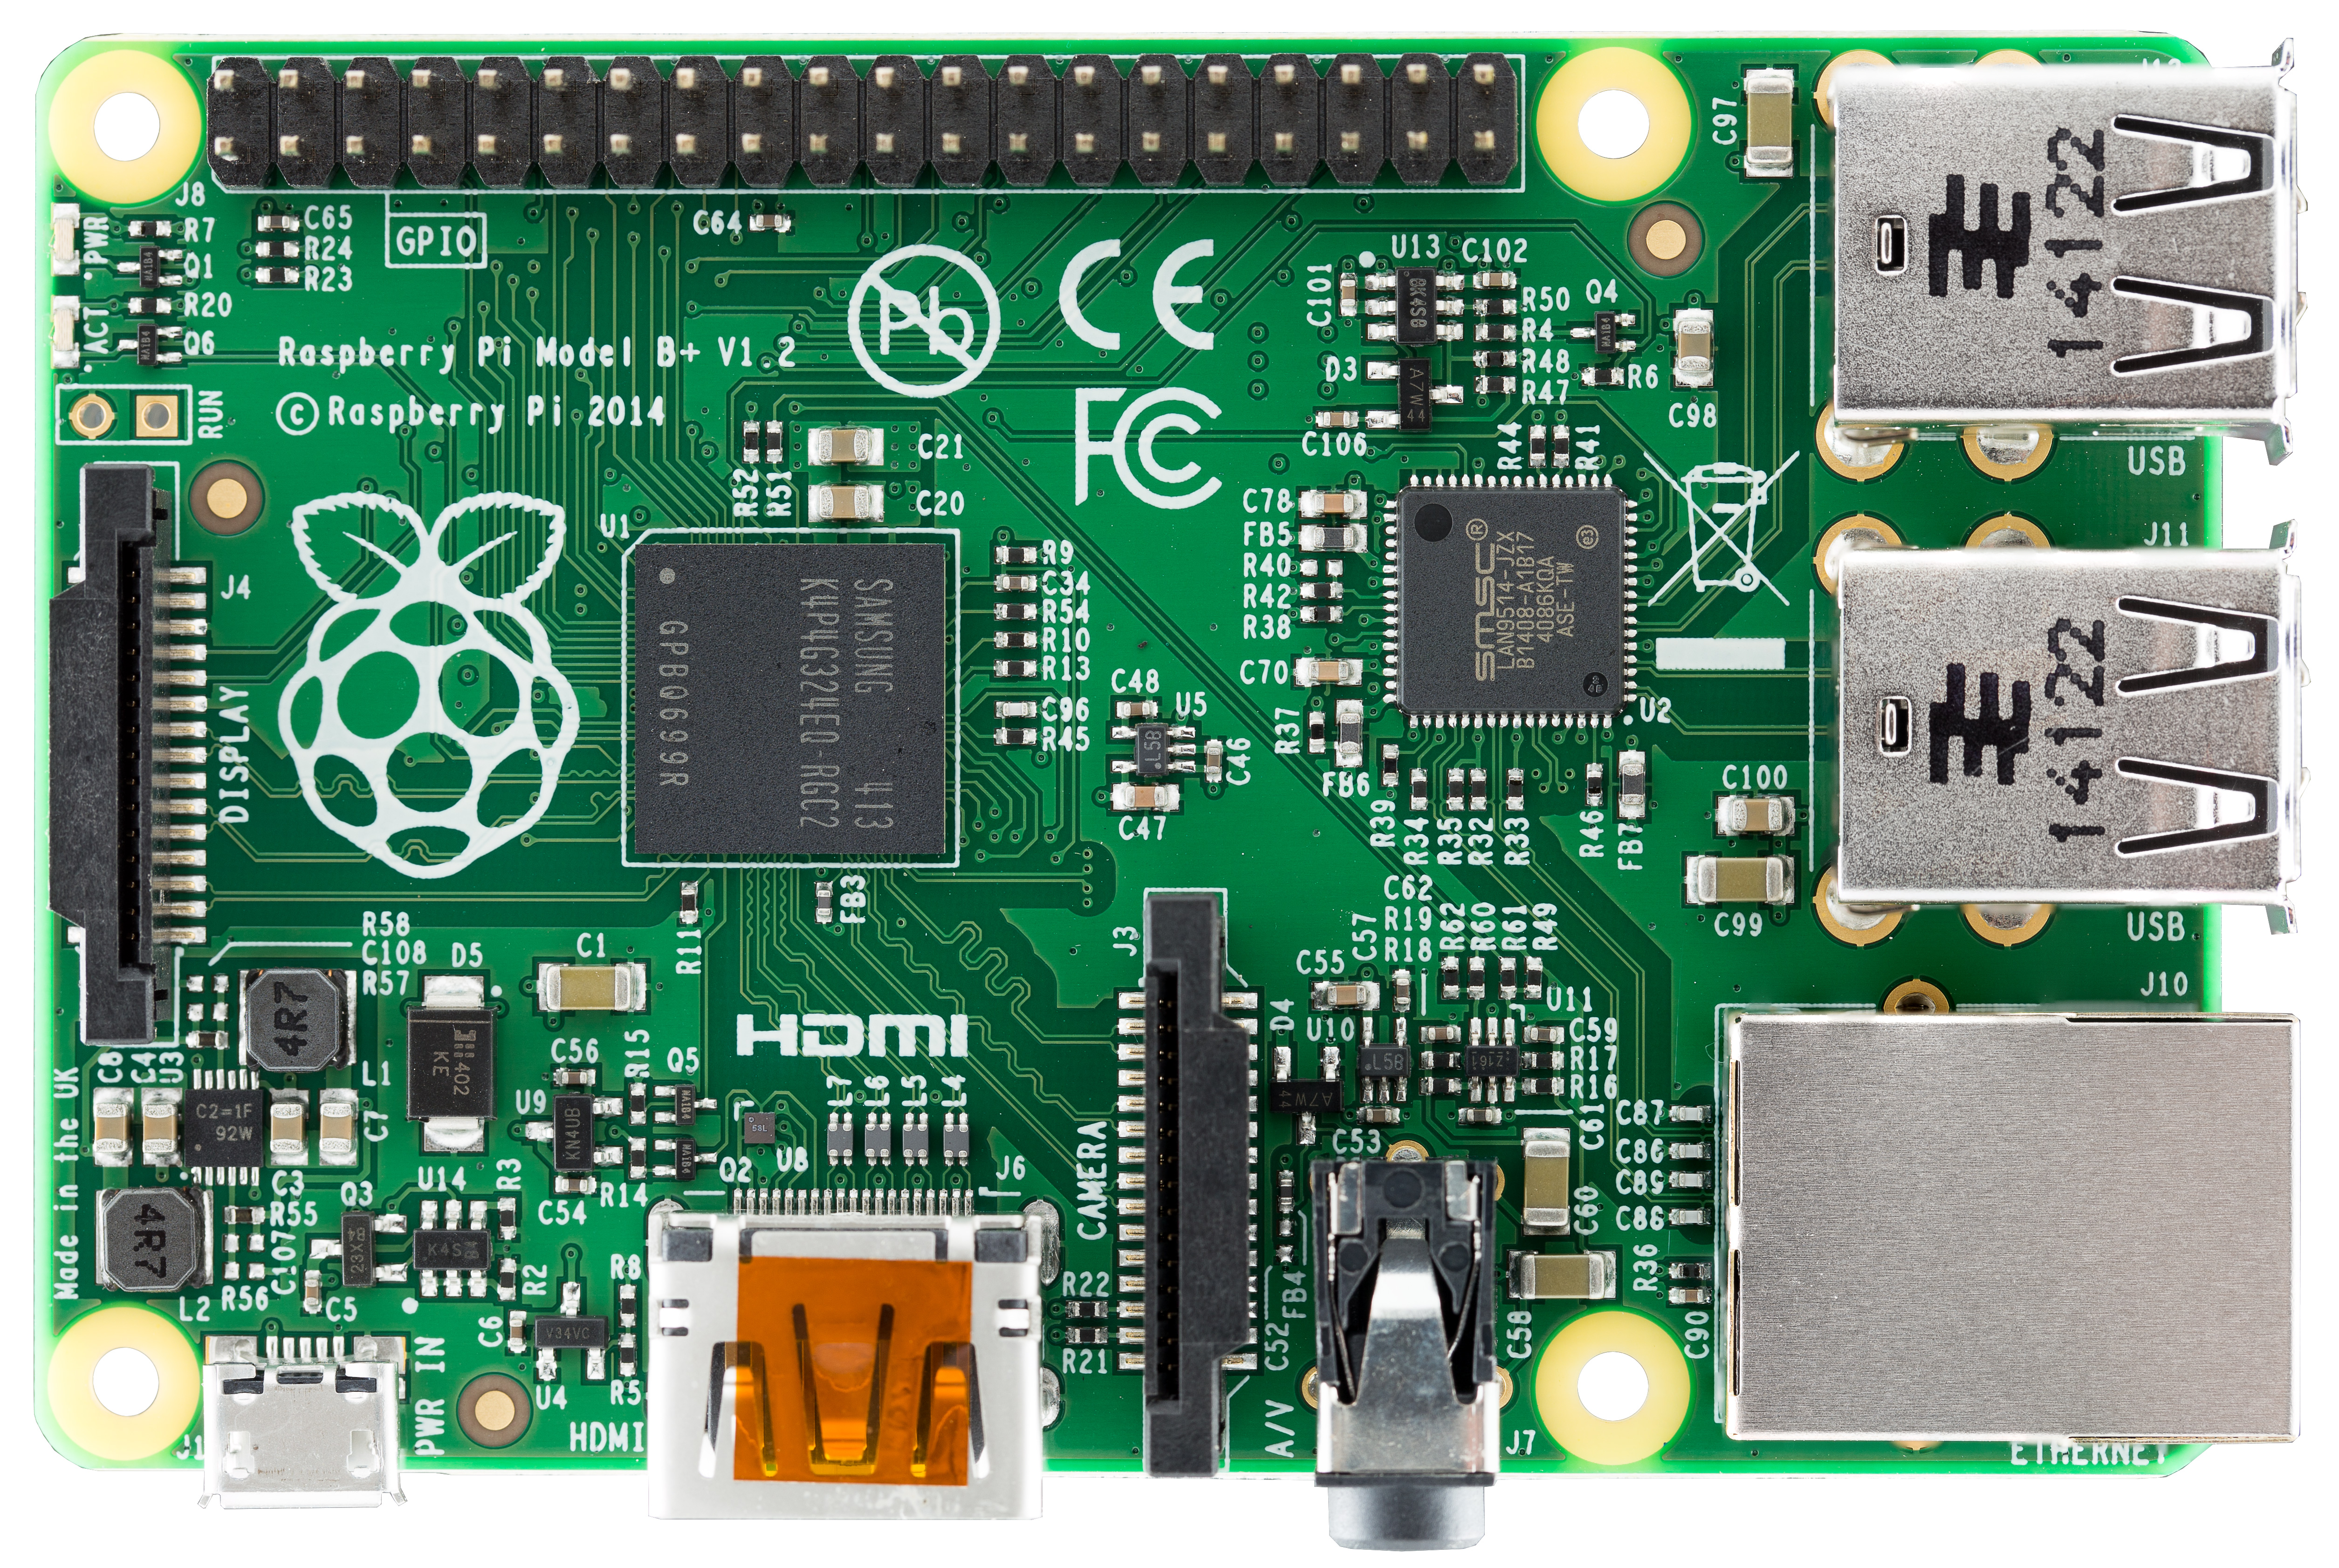 Raspberry PI 1 model B+ 512MB